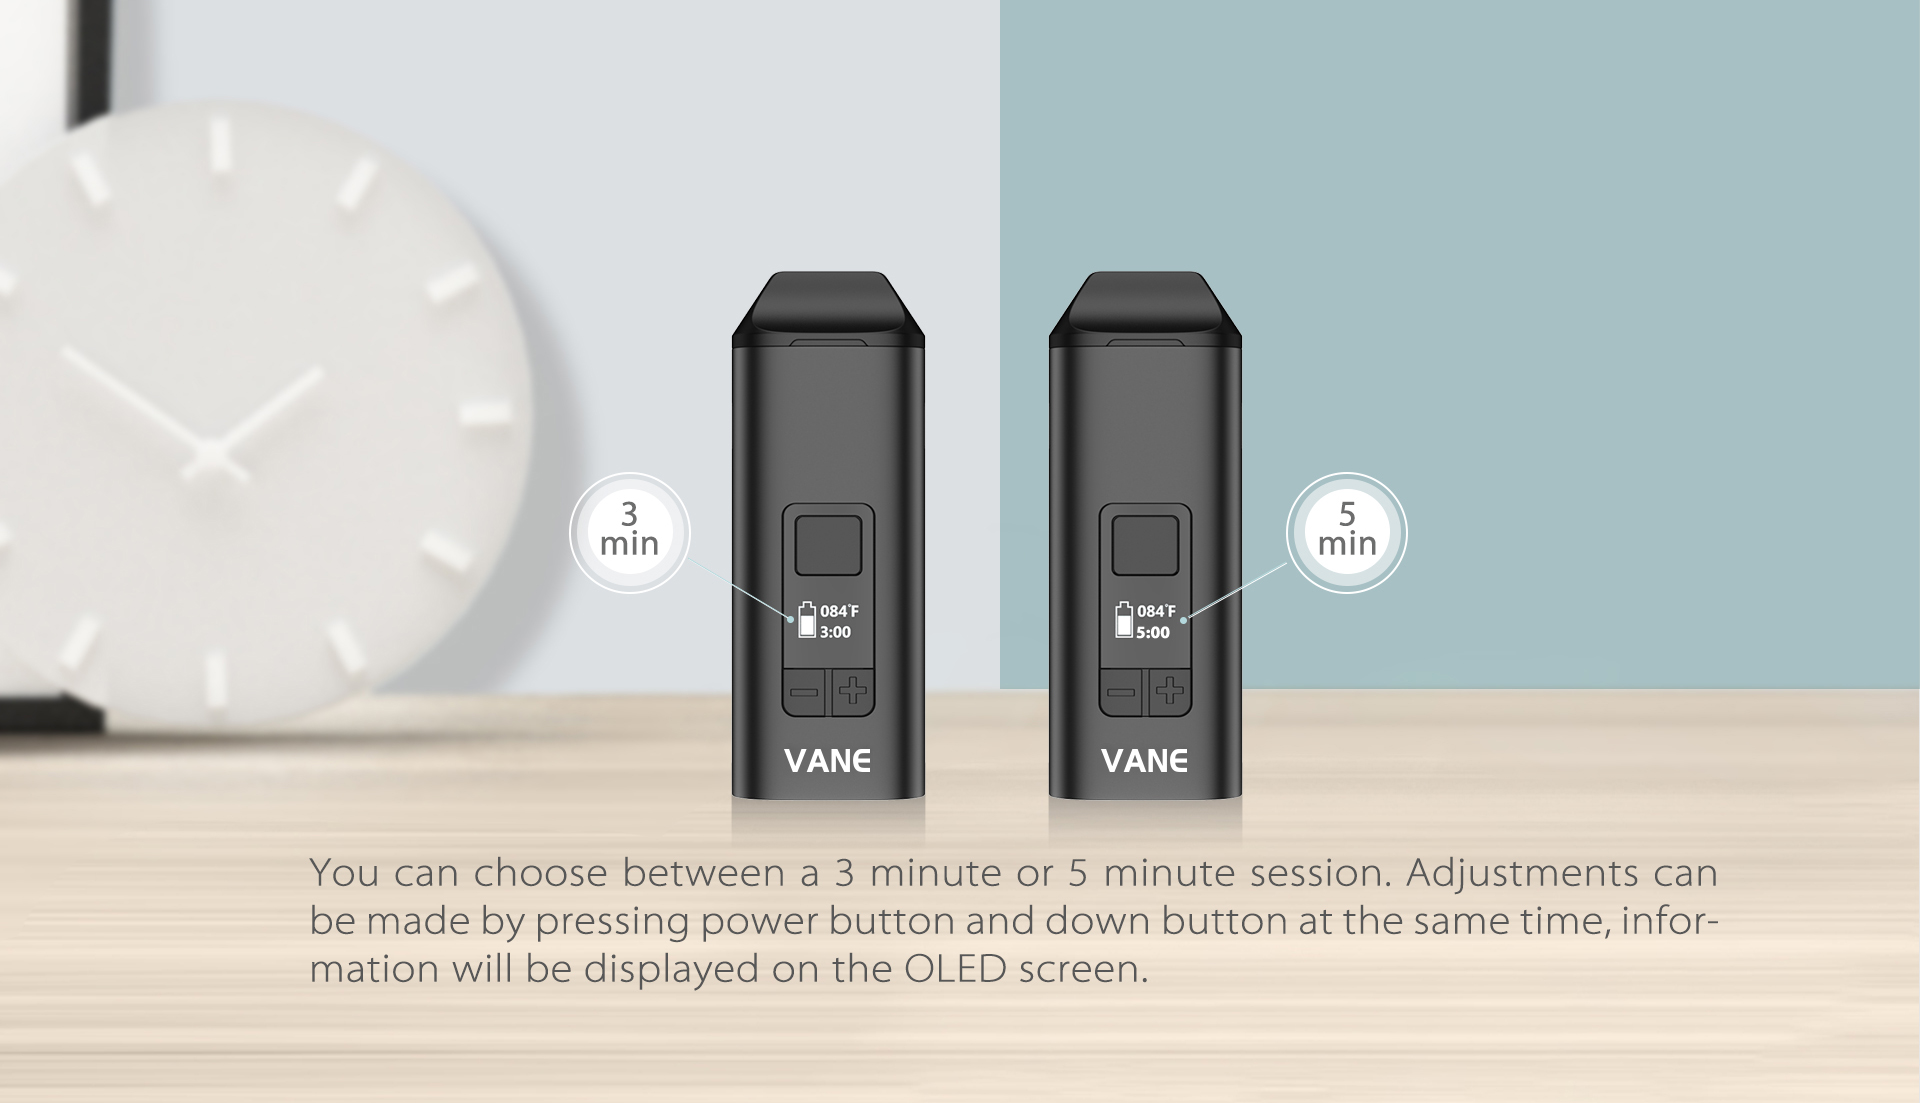 Yocan Vane Dry Vaporizer two vaping options: 3 minute or 5 minute session